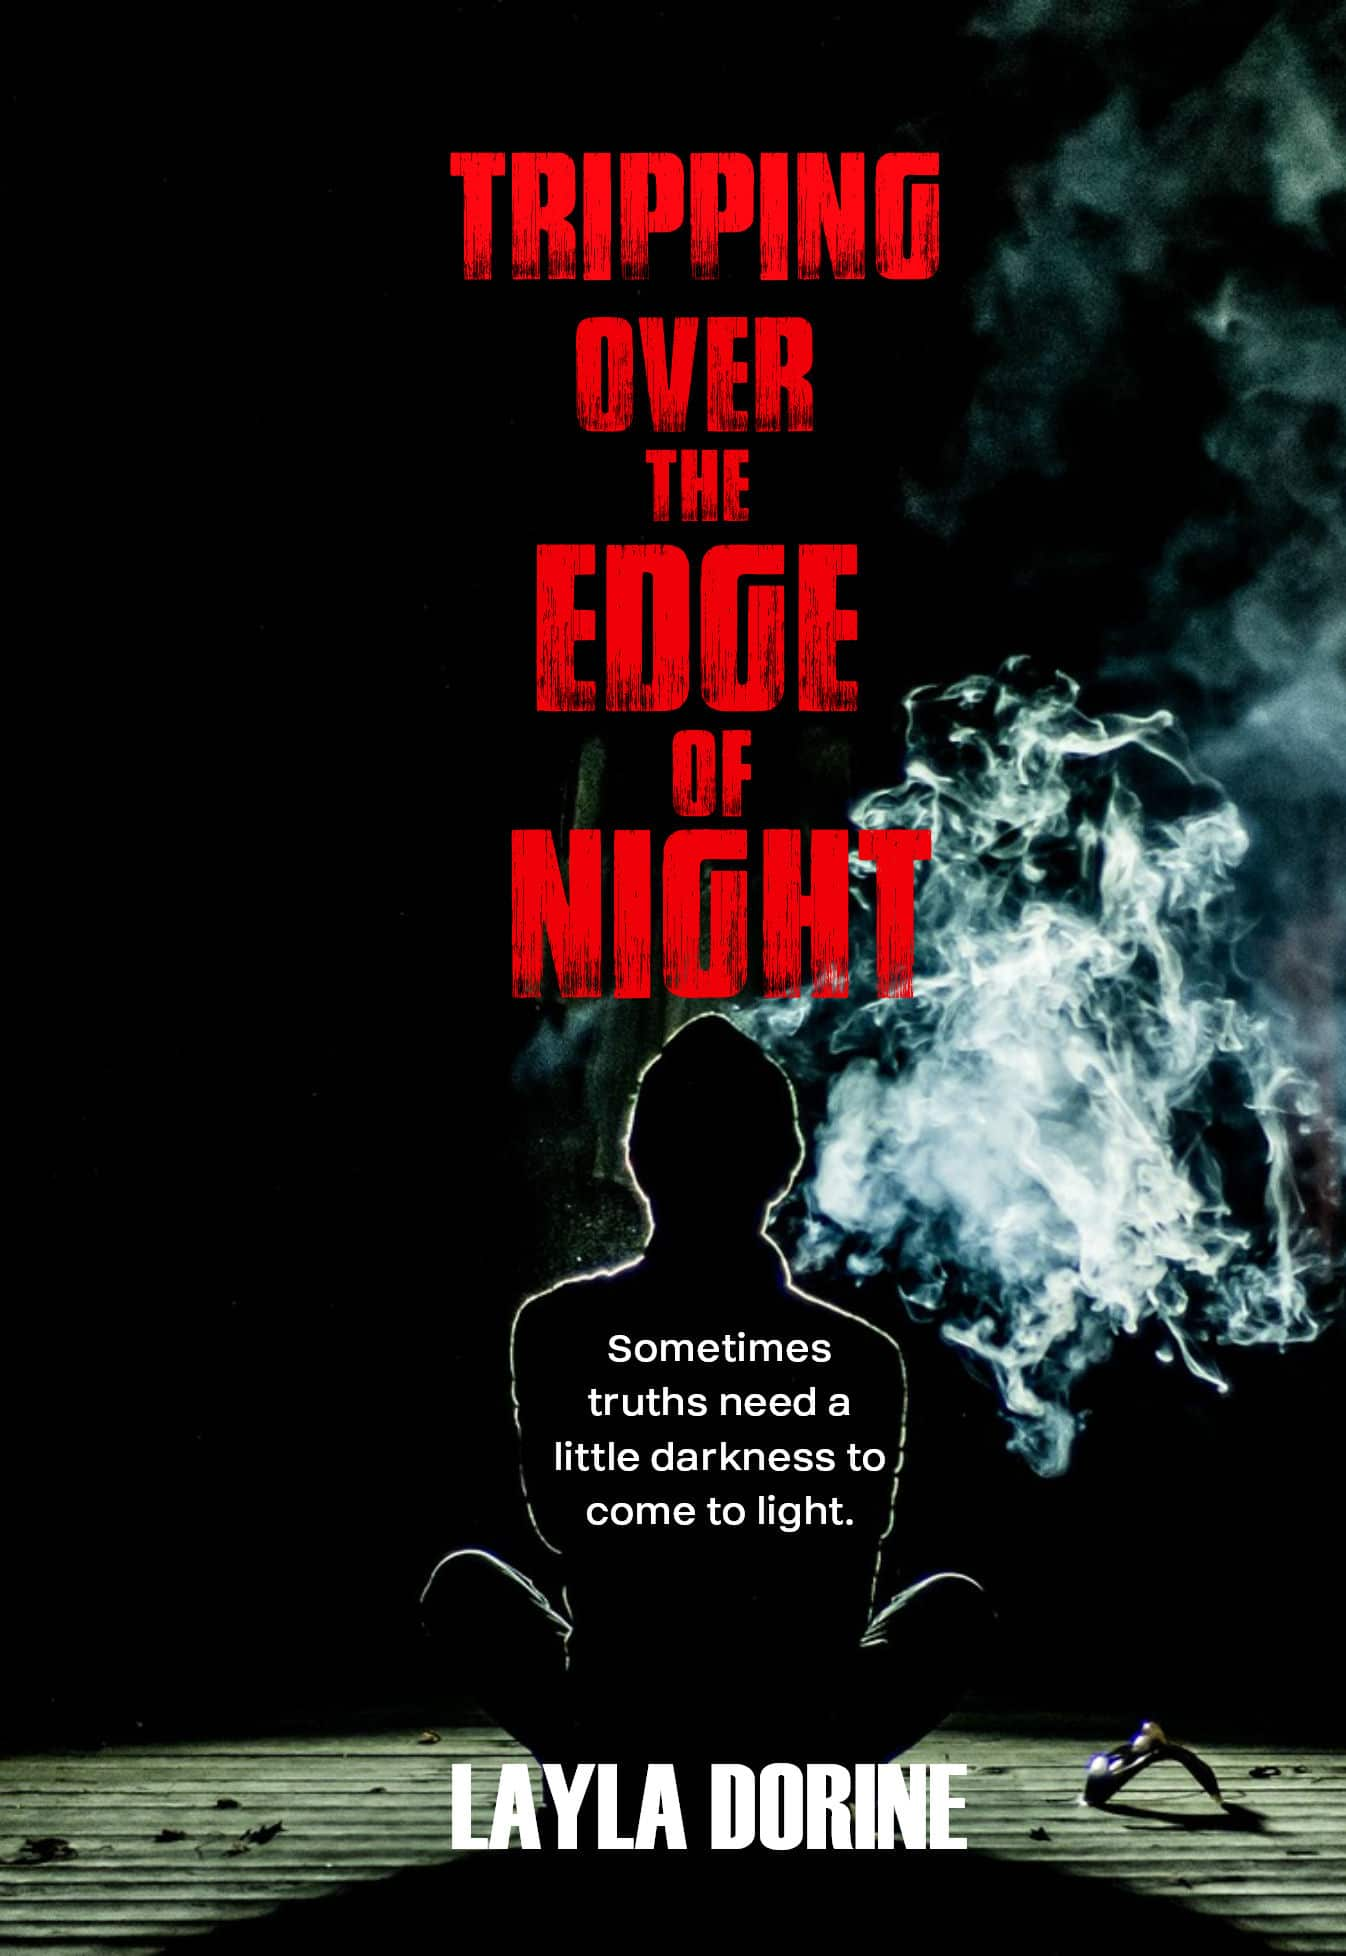 The edge of night and how far it extends